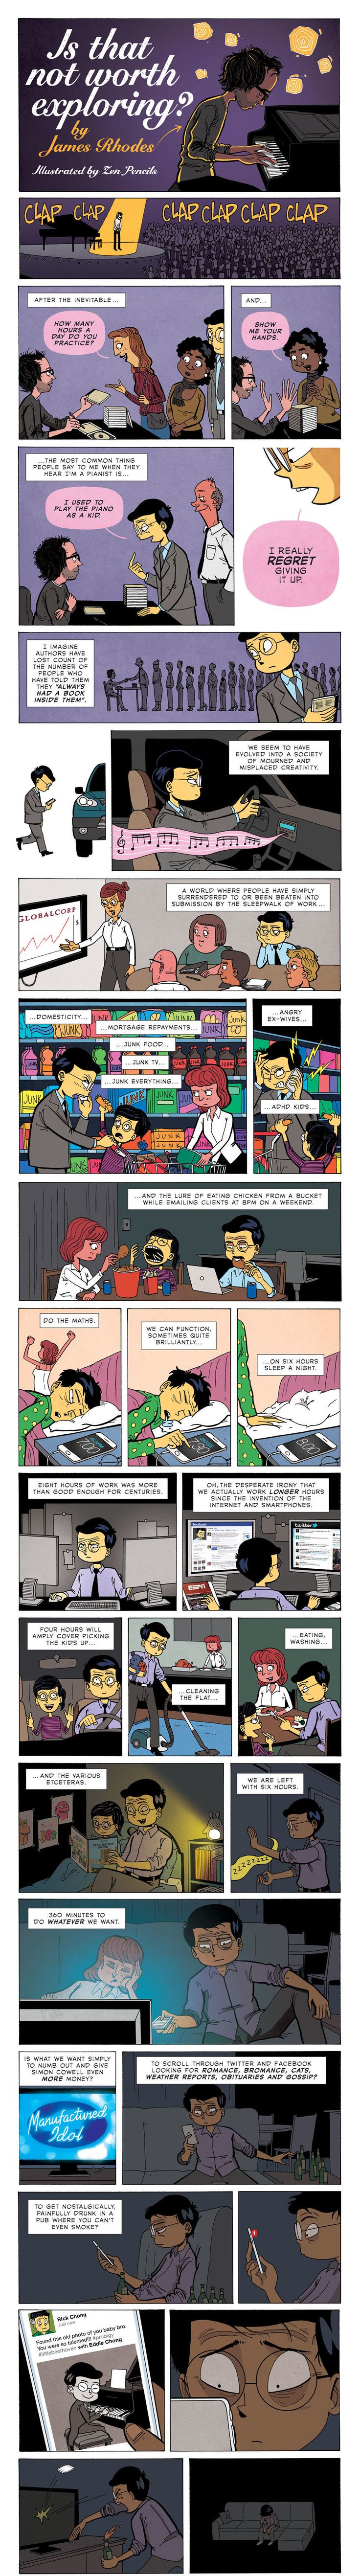 james-rhodes-zen-pencils